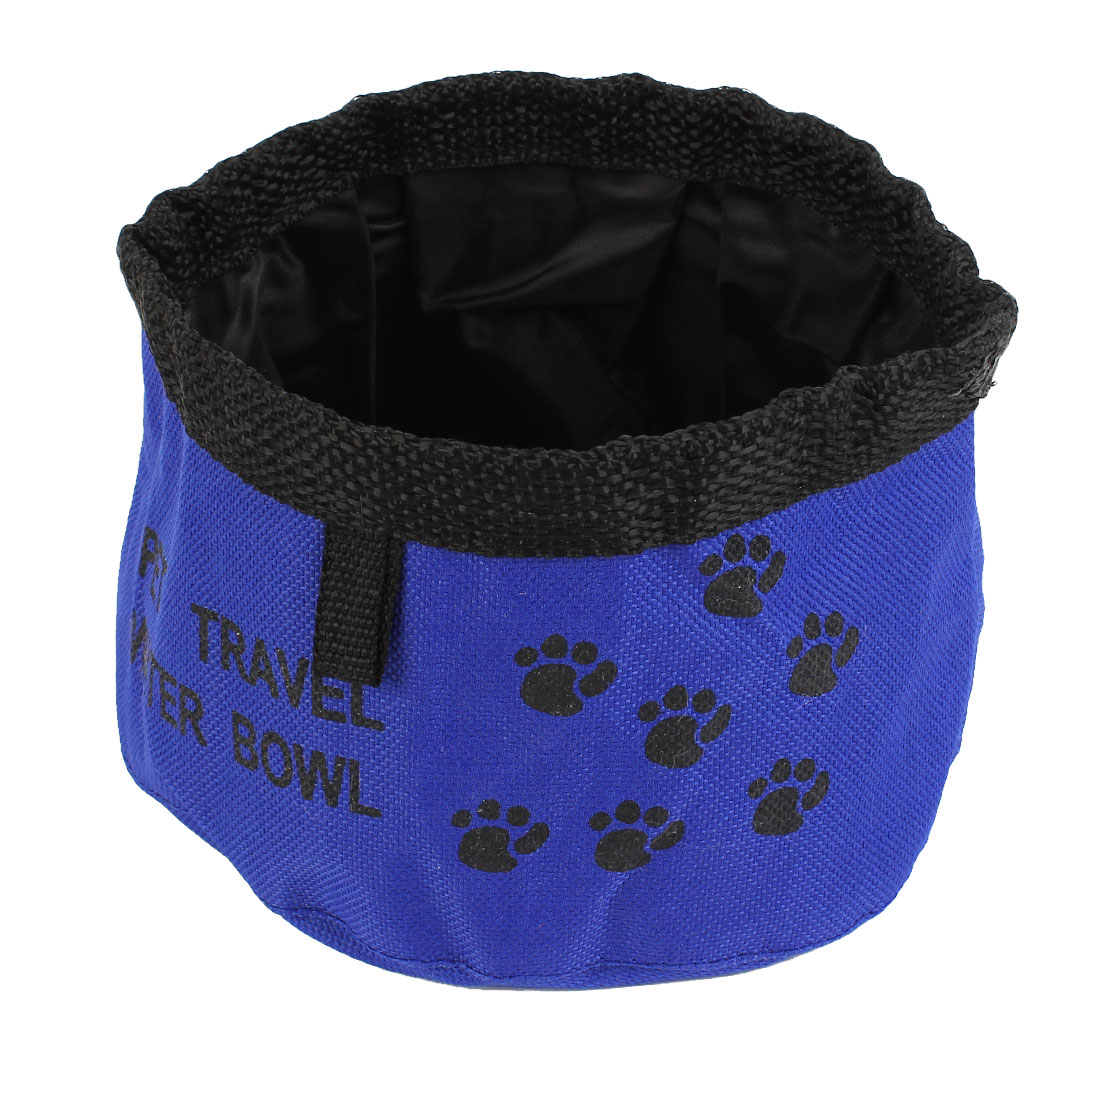 Unique Bargains Blue Black Cat Dog Paw Pattern Foldable Portable Feeder Bowl Water Dish